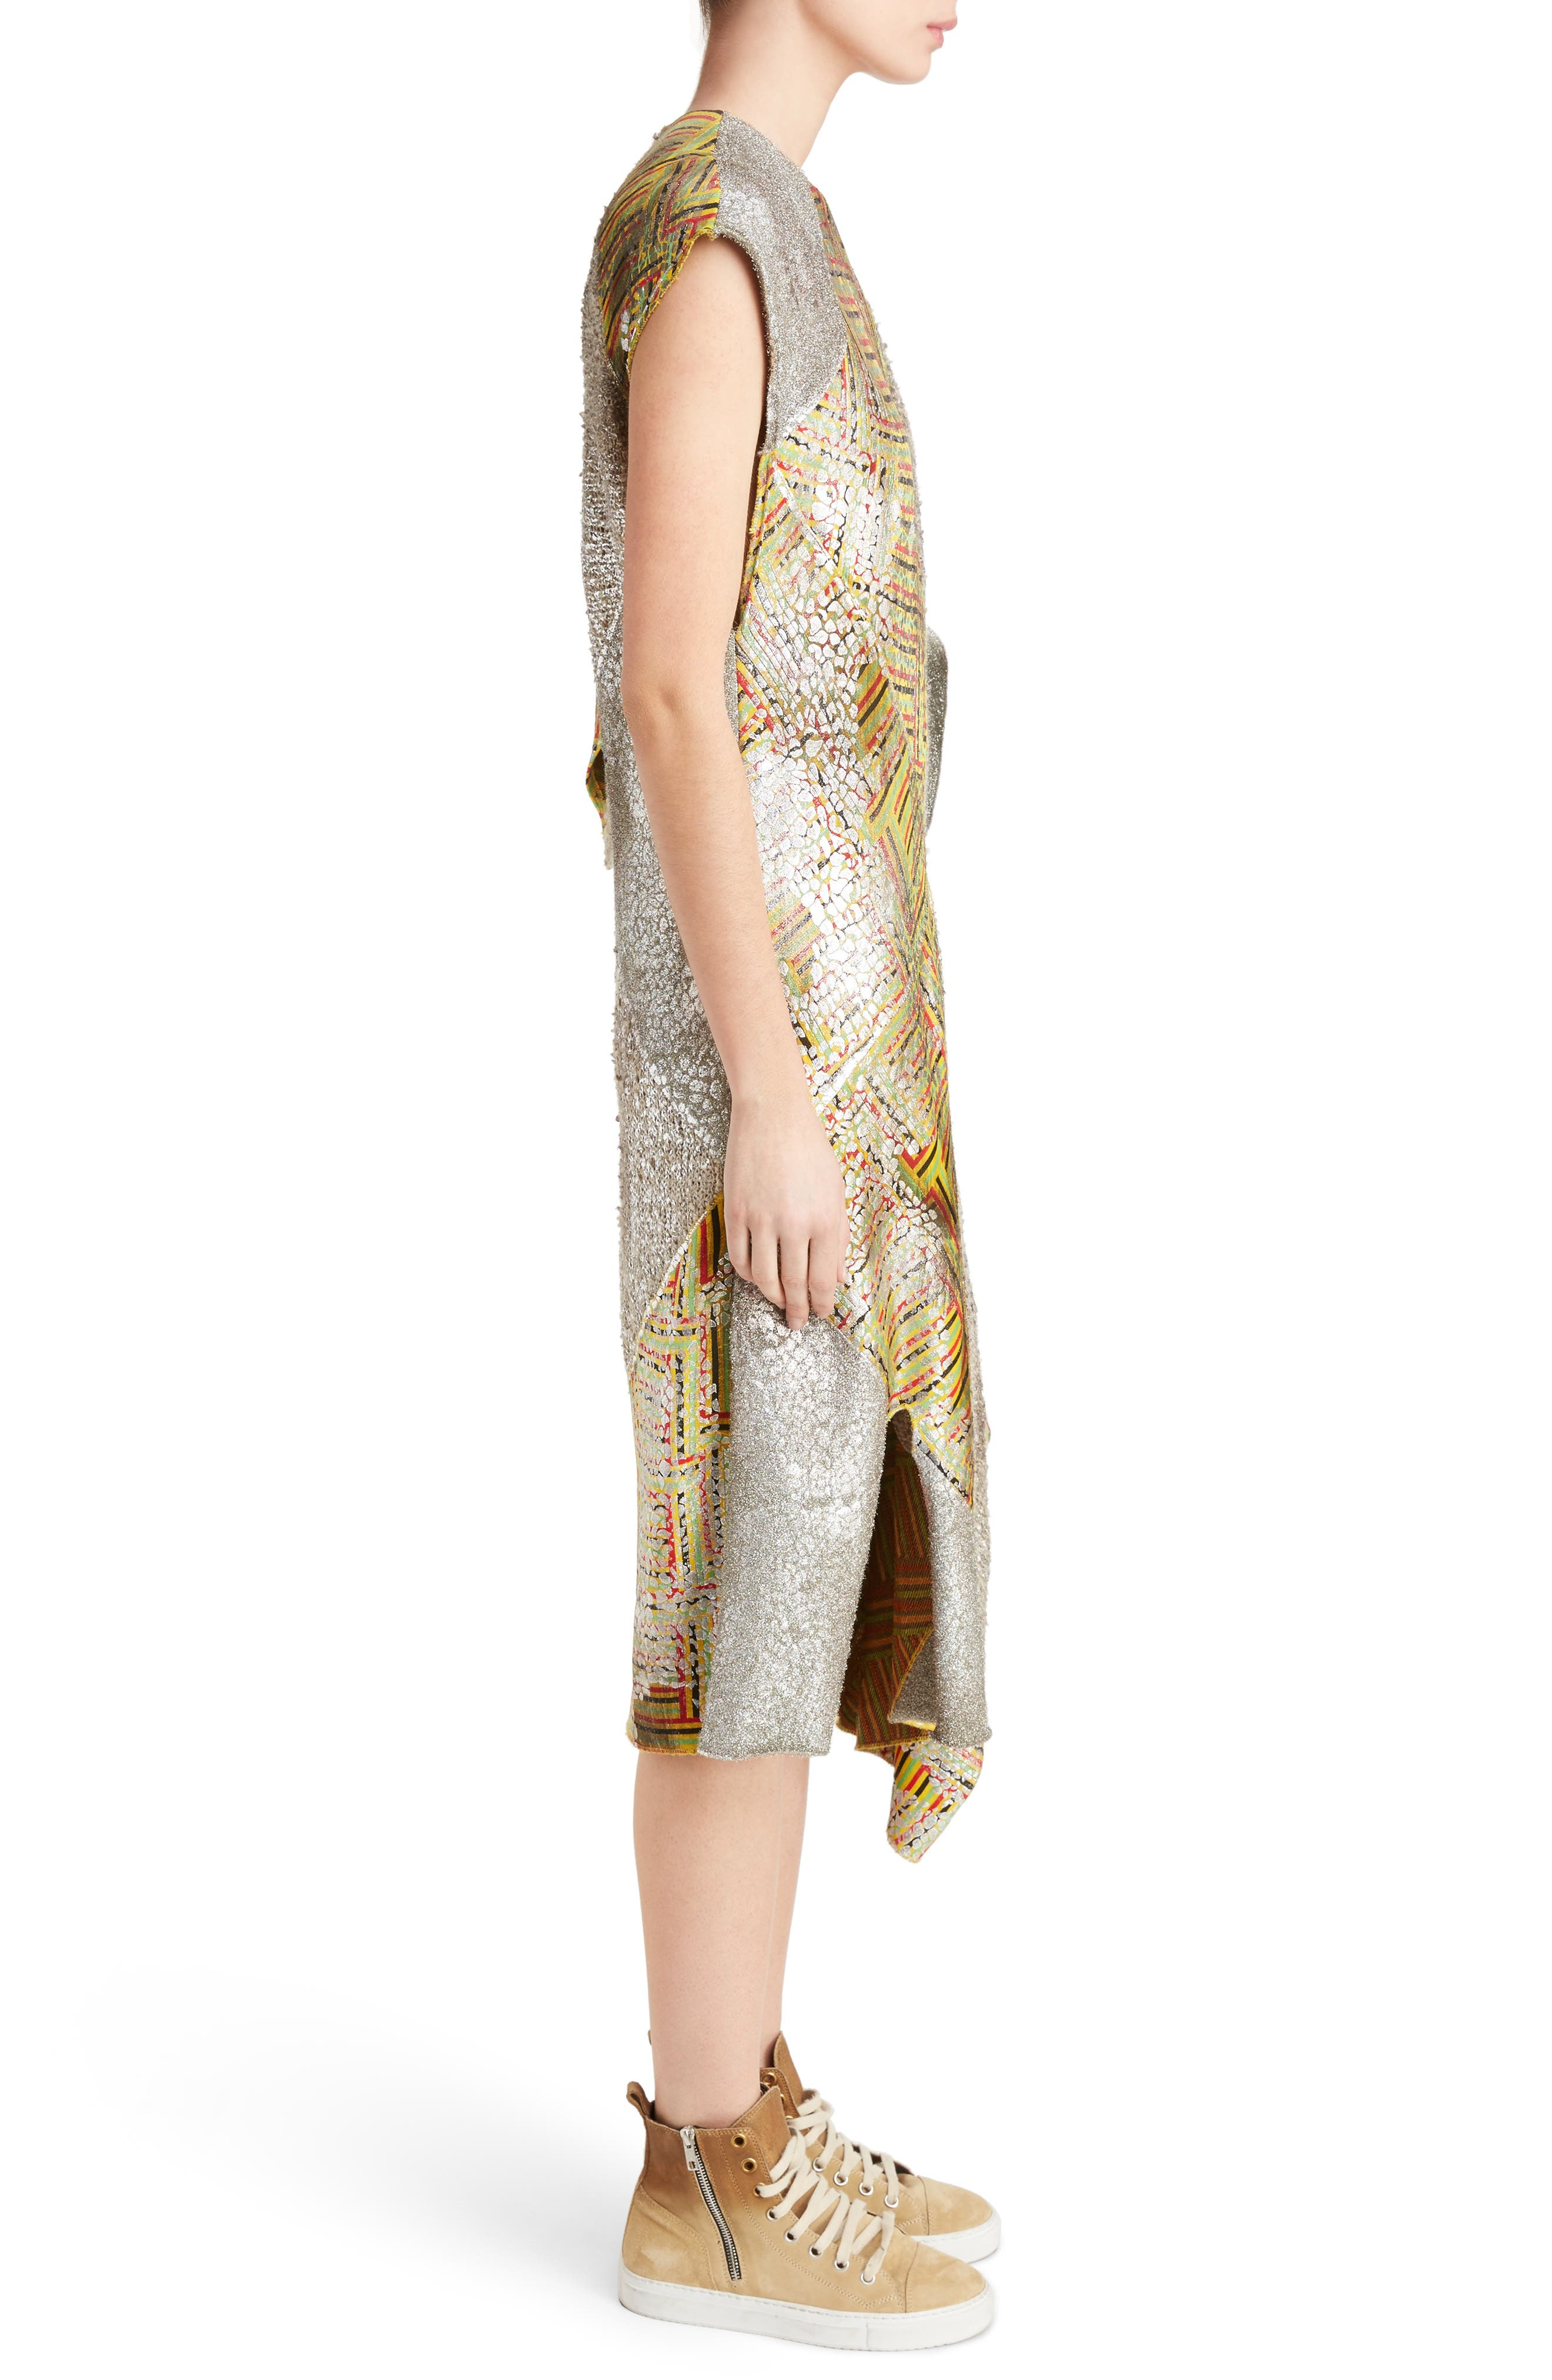 J.W.ANDERSON Geo Patterned Asymmetrical Draped Dress,                             Alternate thumbnail 3, color,                             040